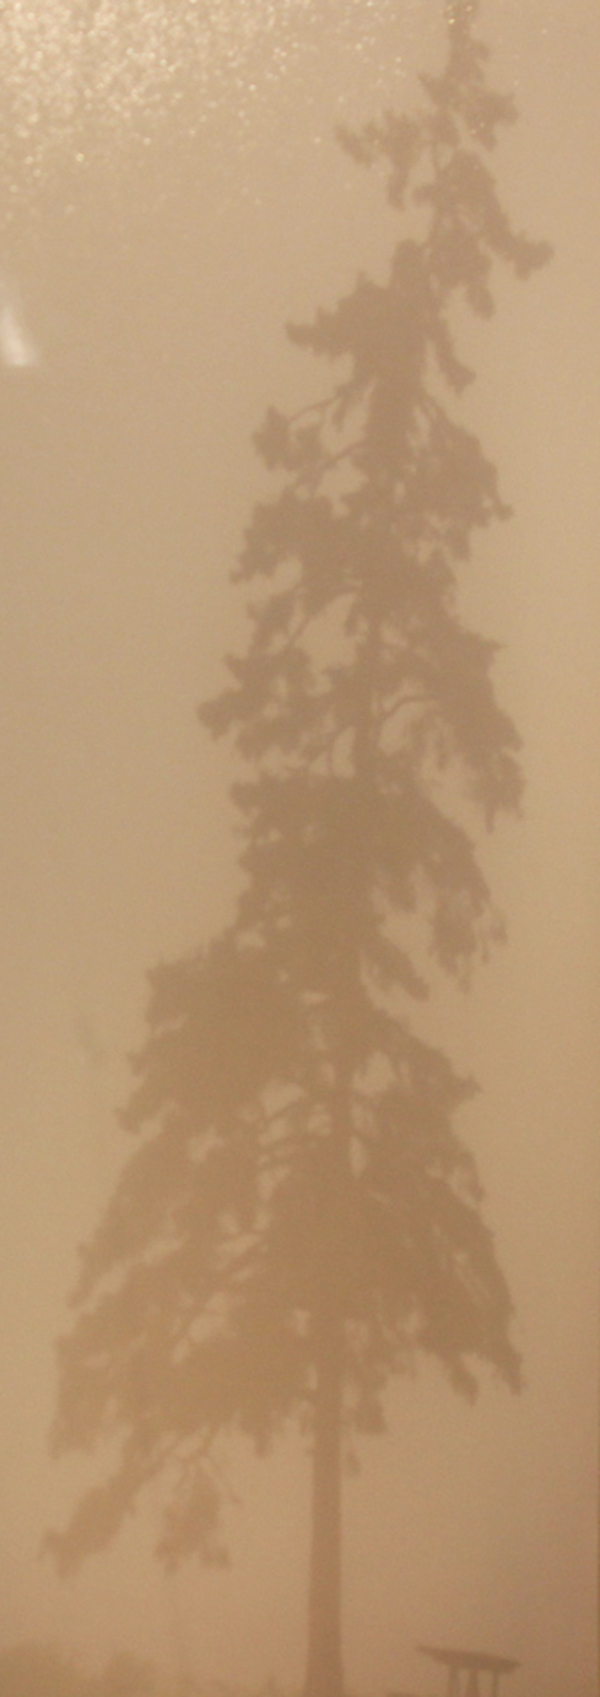 Tree in Fog By: Christine Patterson